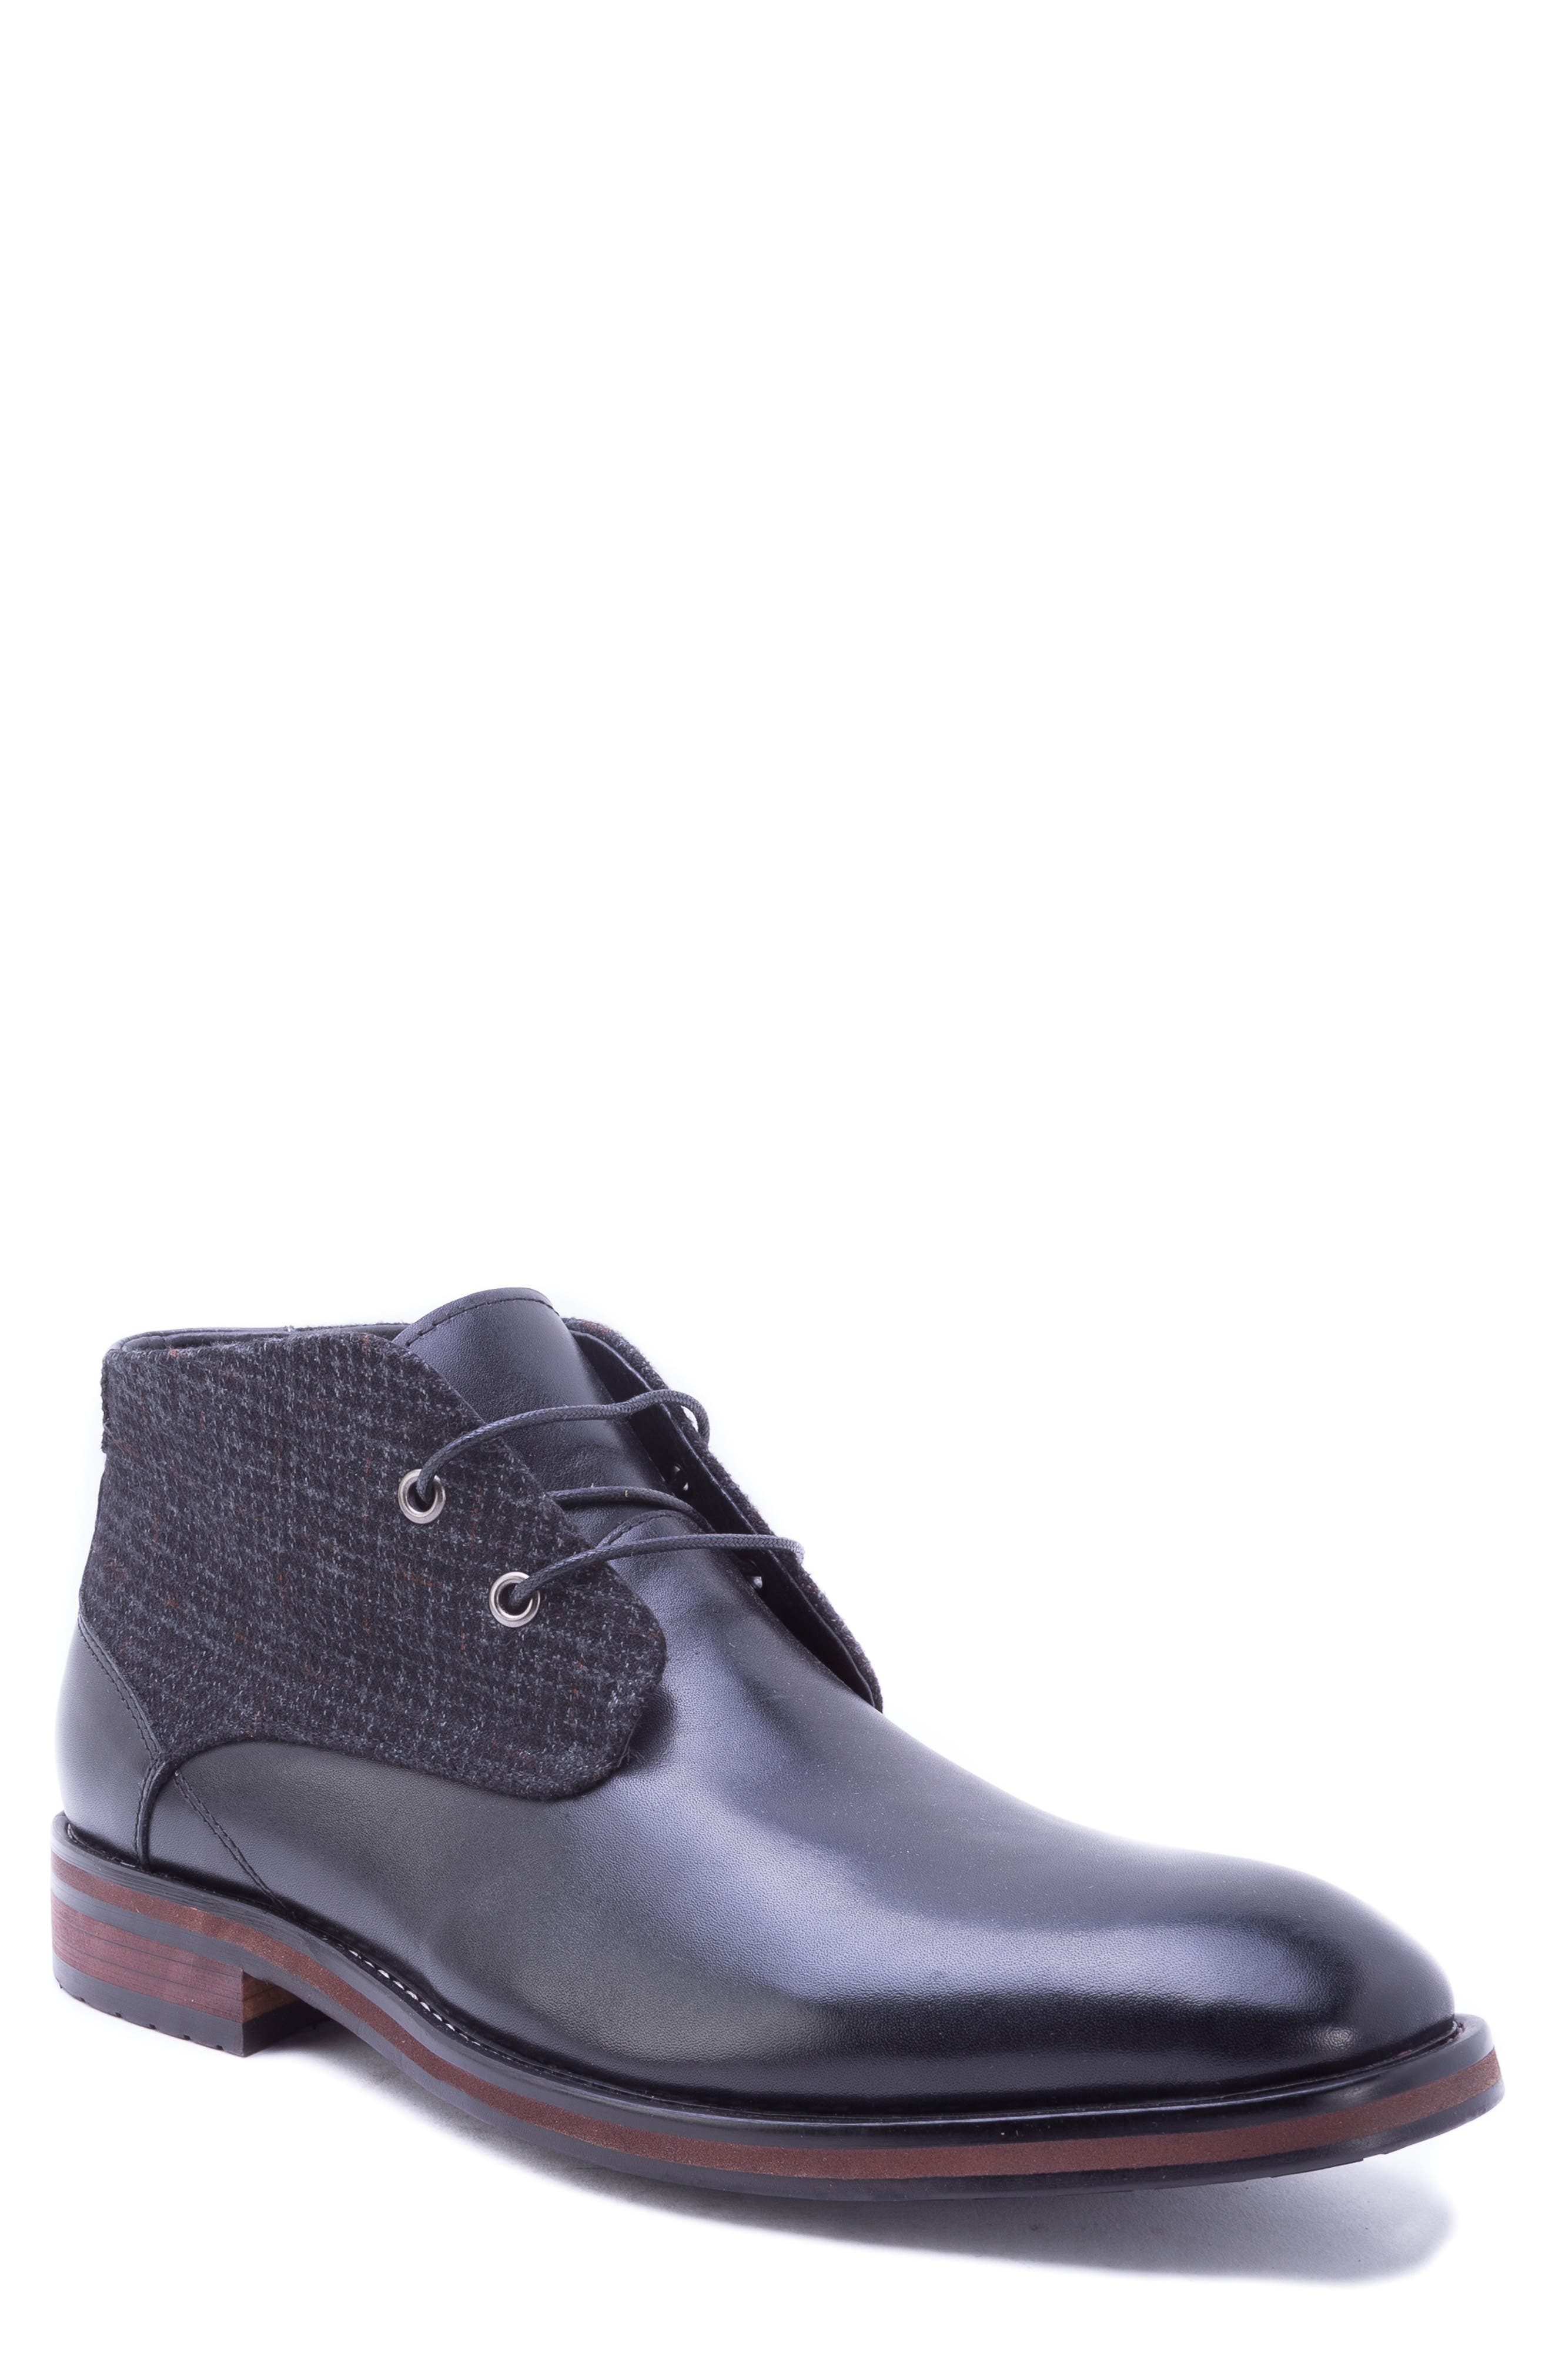 Nebot Chukka Boot,                             Main thumbnail 1, color,                             BLACK LEATHER/ FABRIC